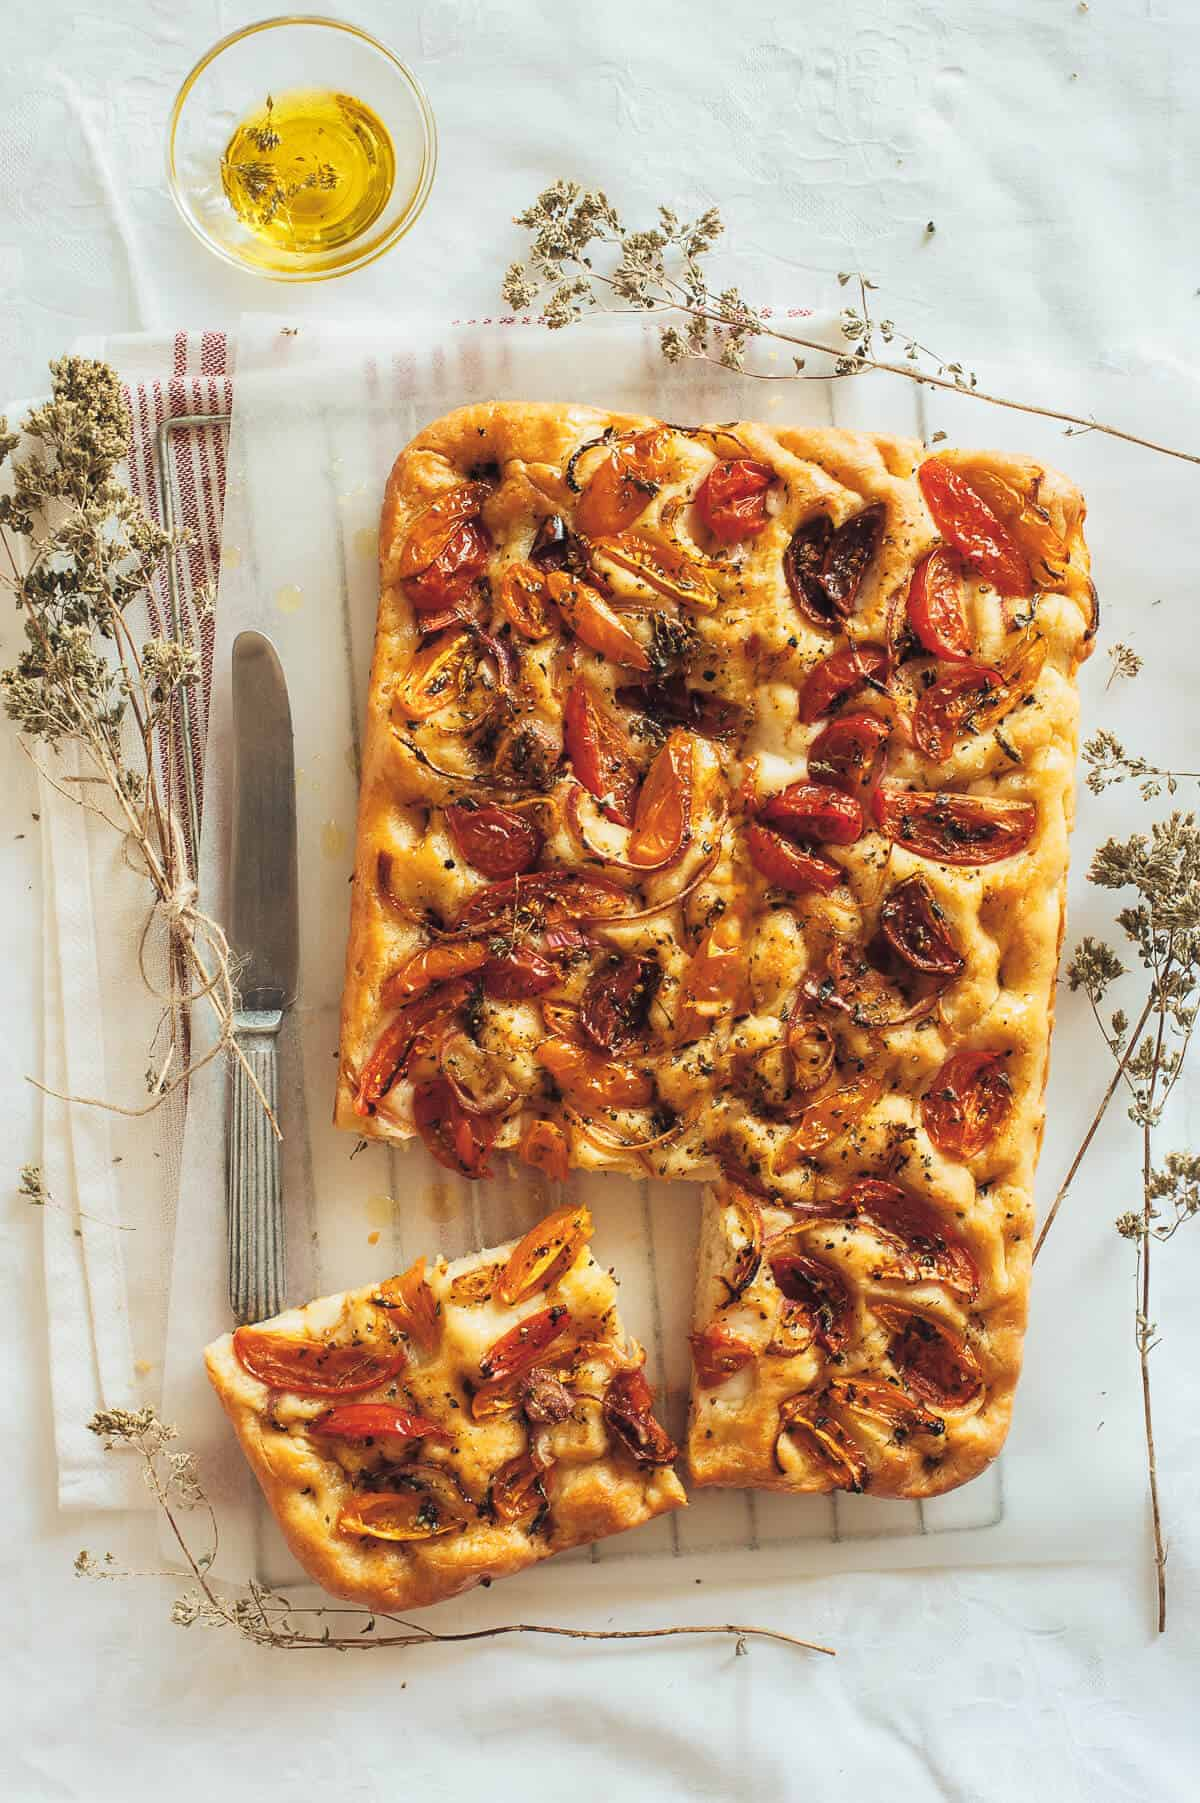 a top down view of a Greek flatbread called ladenia topped with tomatoes, oregano and red onions